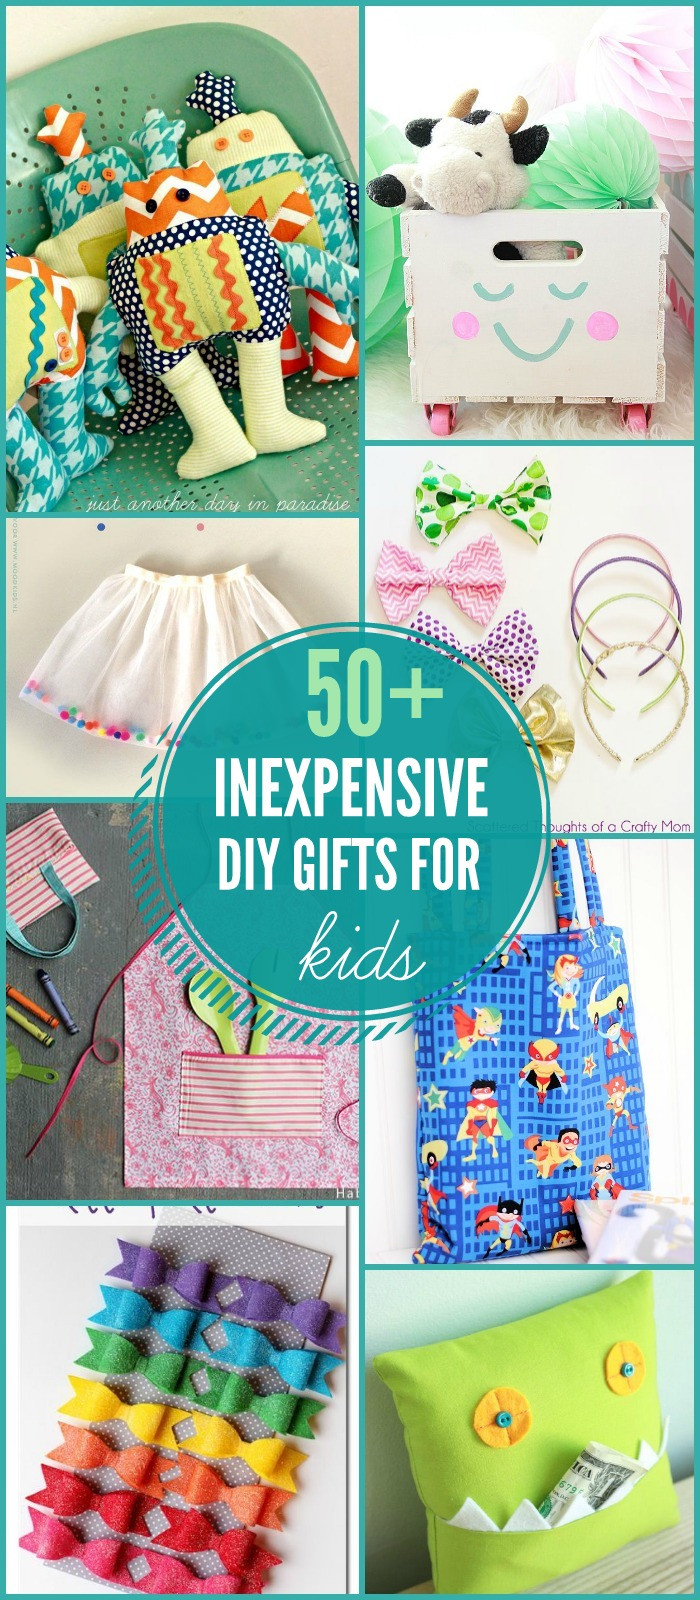 Best ideas about Handmade Christmas Gifts For Kids . Save or Pin DIY Gifts for Kids Now.